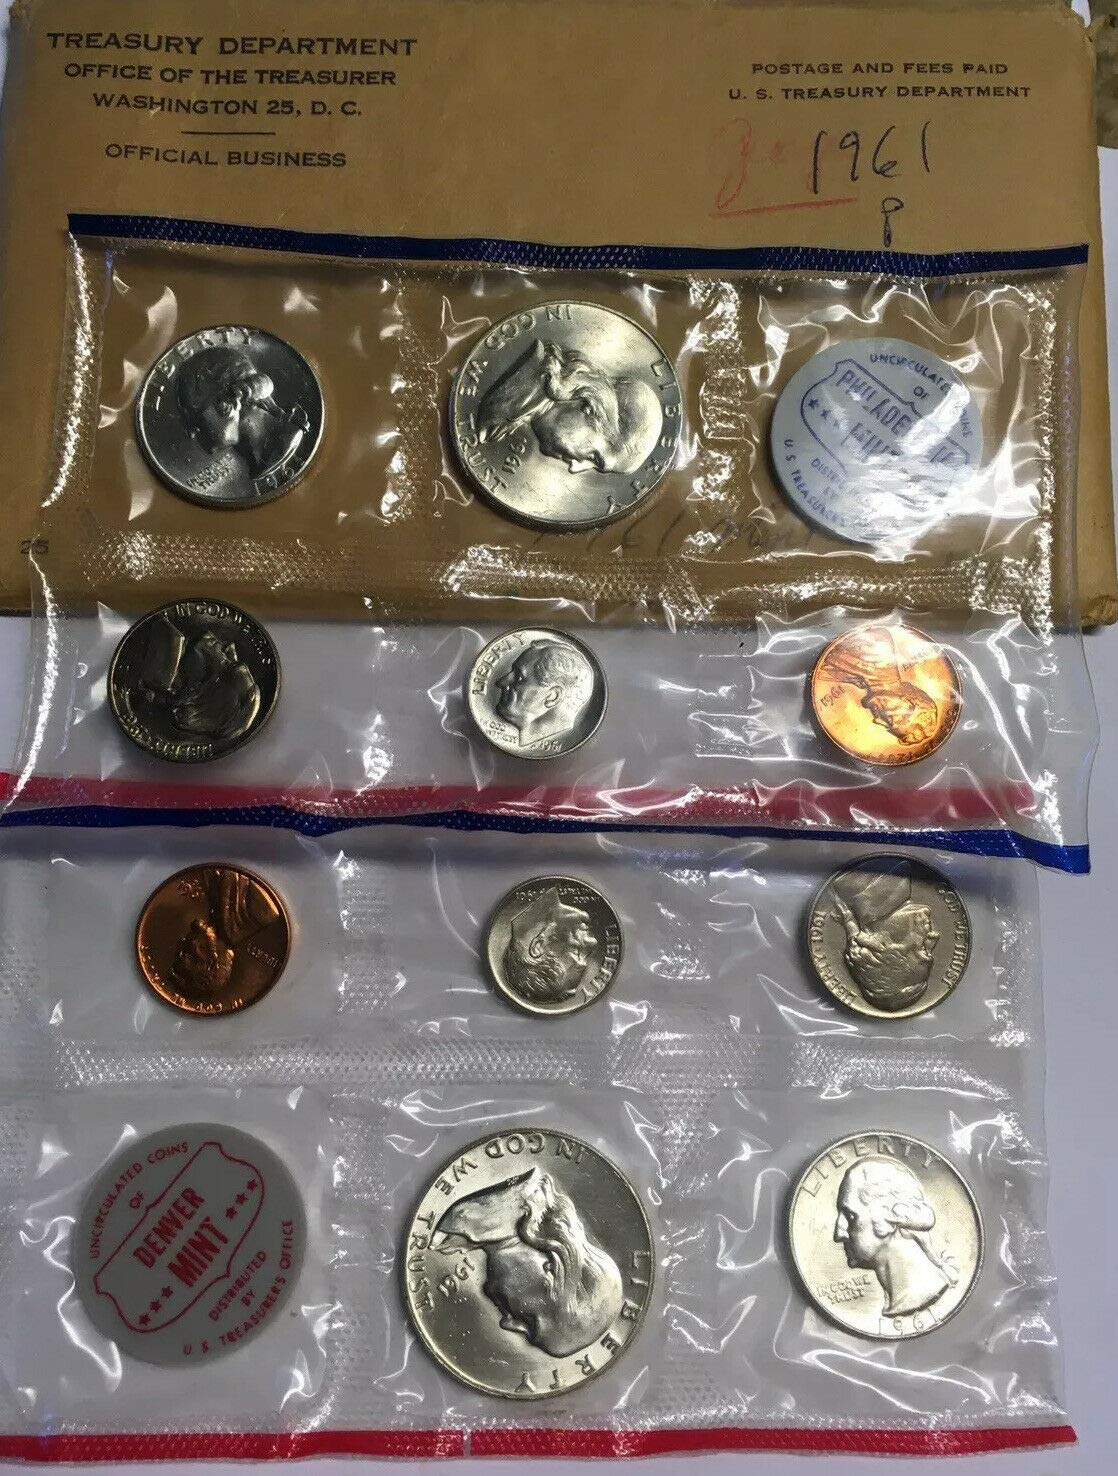 1963 US SILVER PROOF SET P /& D 90/% SILVER COINS WITH TREASURY ENVELOPE